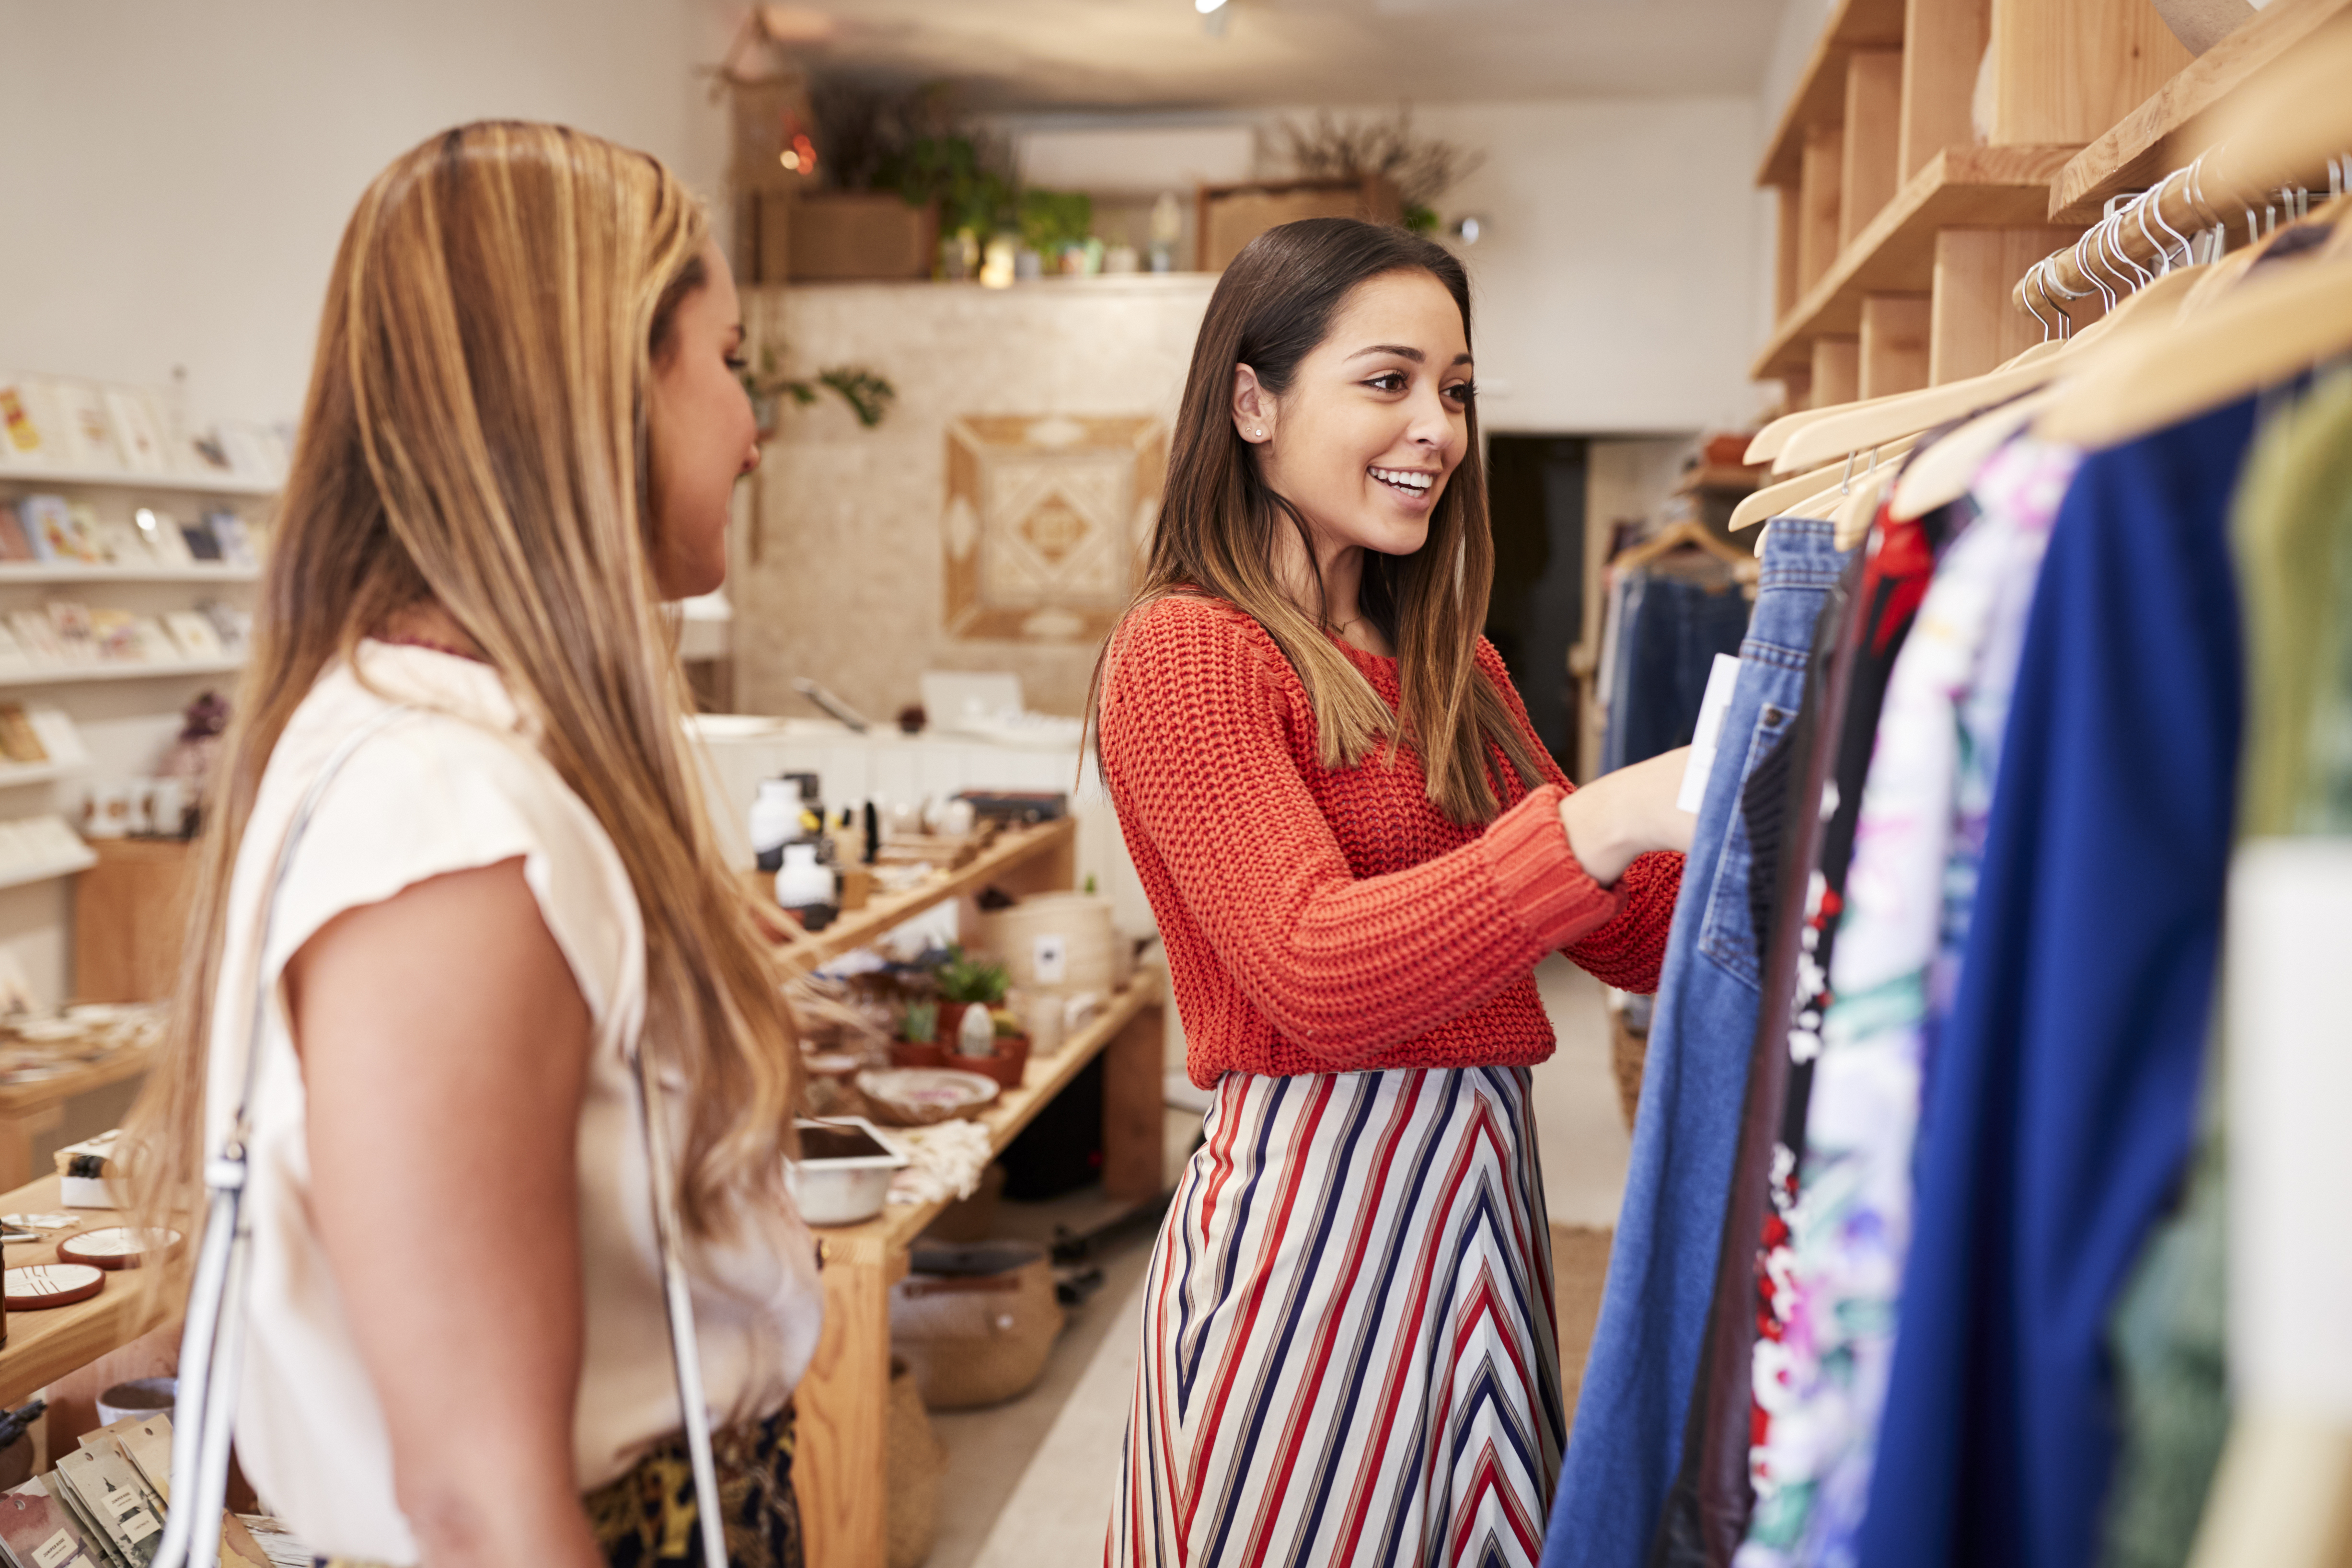 two-female-friends-shopping-in-independent-clothin-HSUTWFG (1)